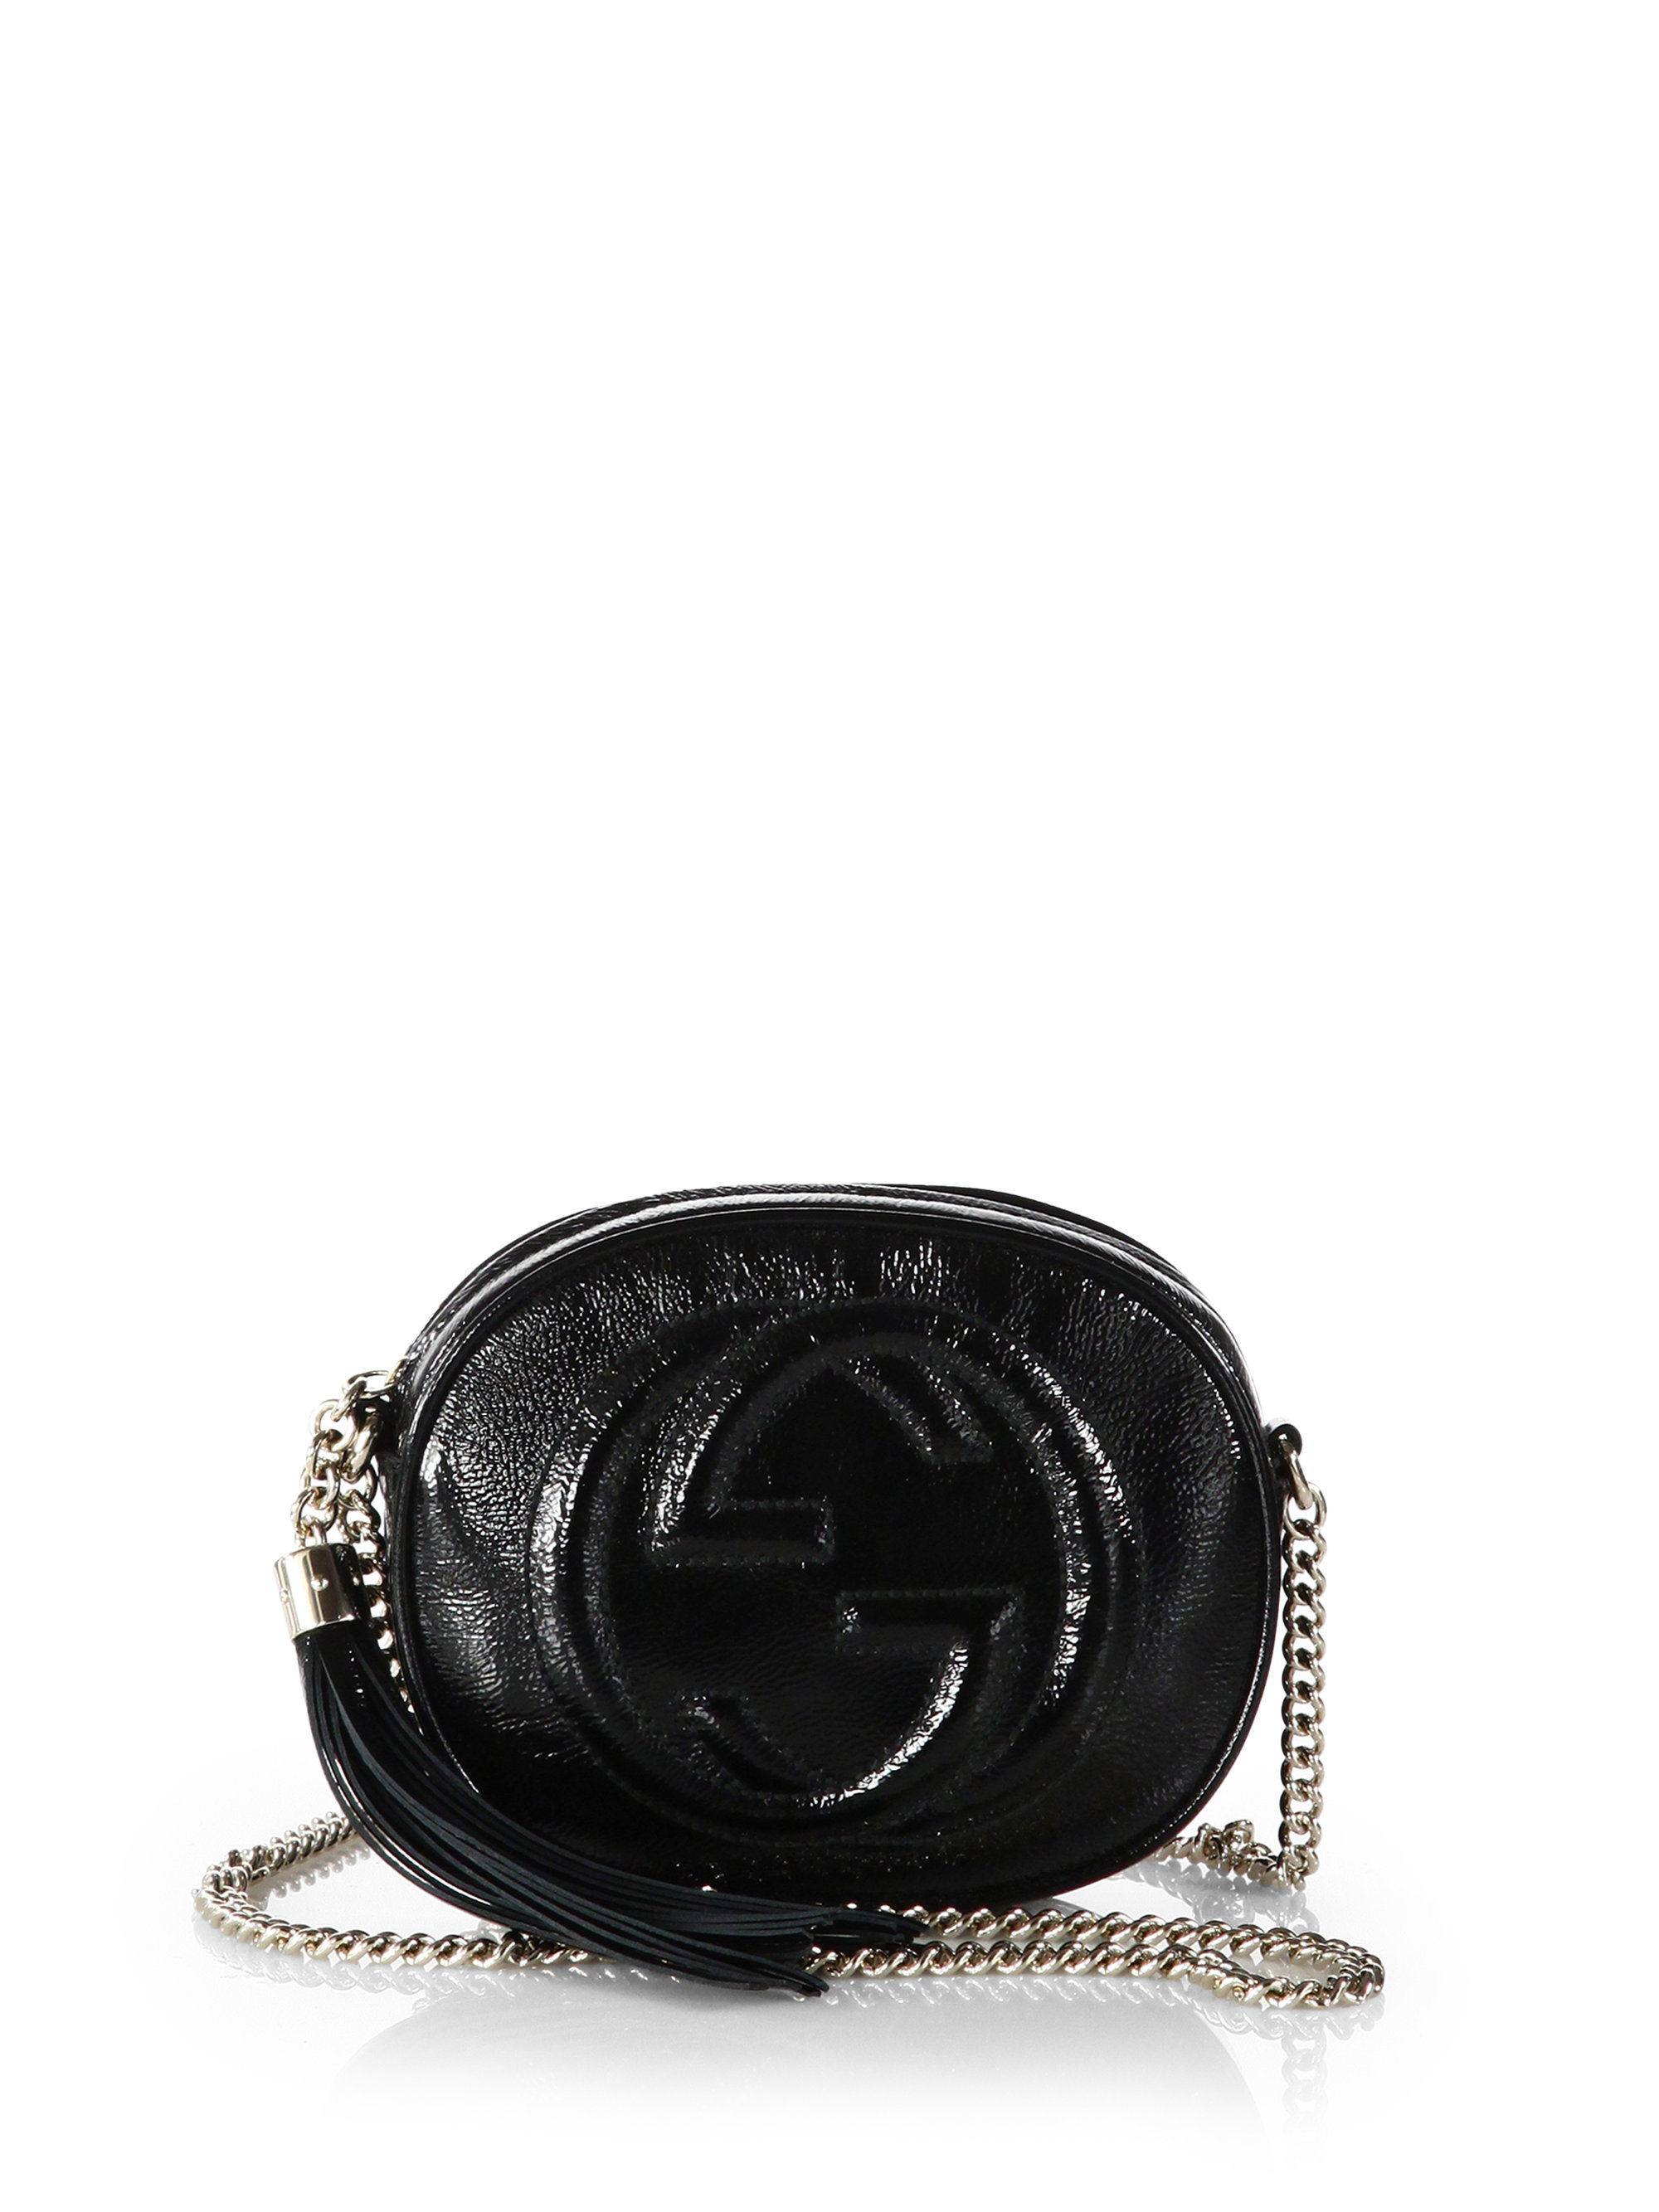 09d926b0a6a Gallery. Previously sold at  Saks Fifth Avenue · Women s Gucci Soho Bag